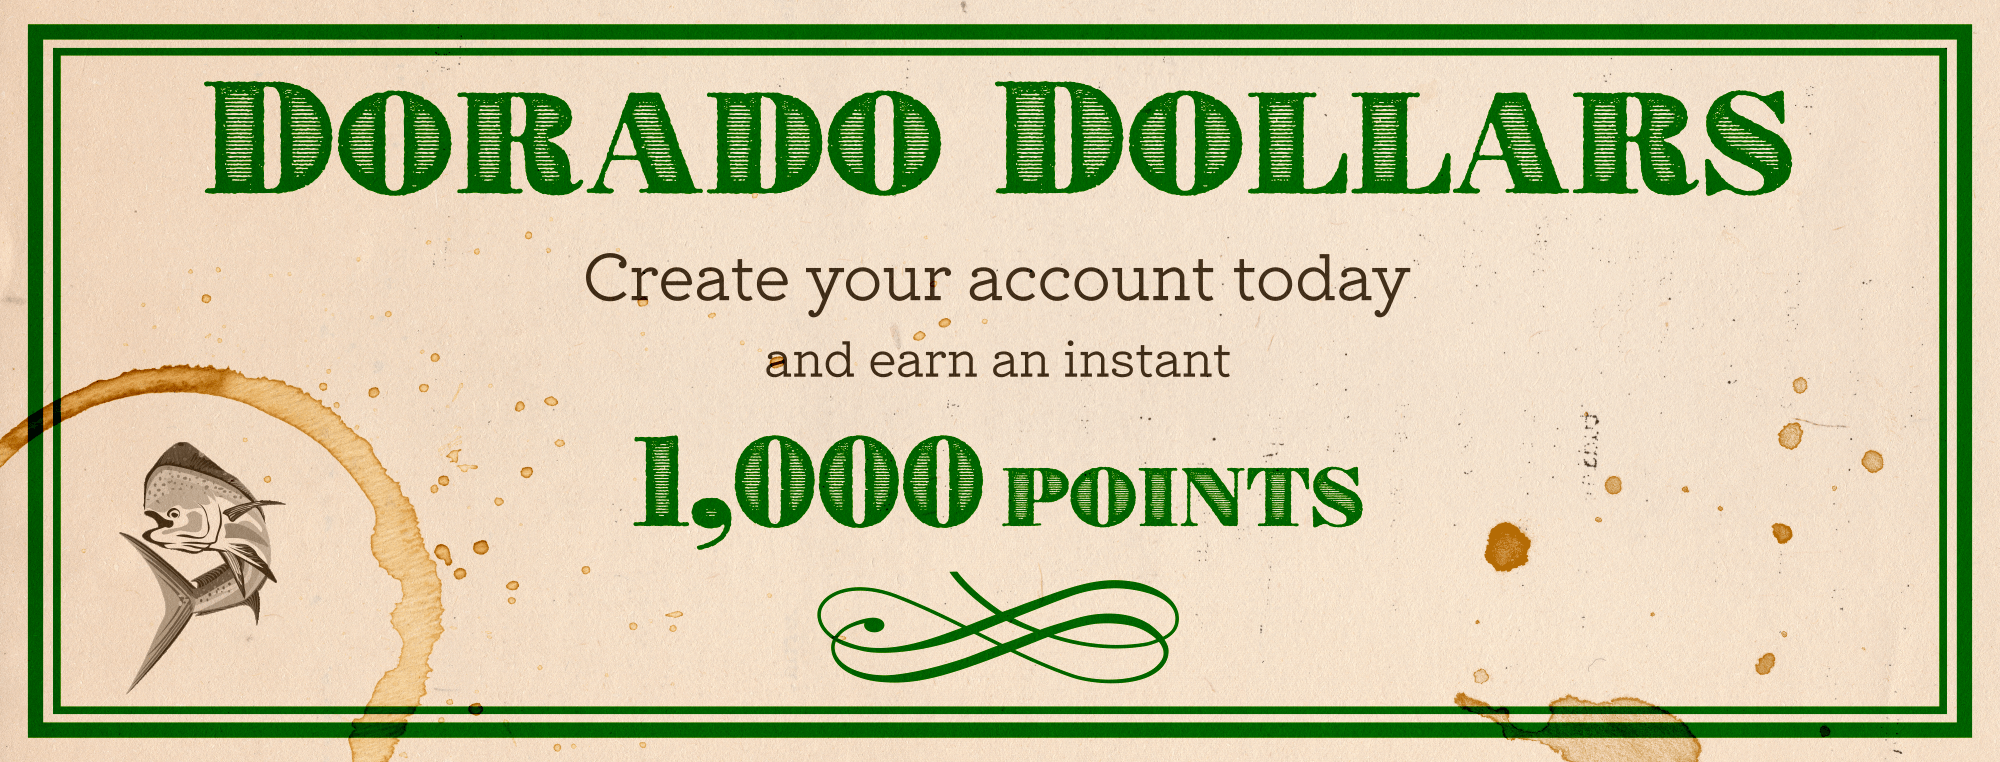 1000 point sign up bonus -- Start earning Dorado Dollars today!